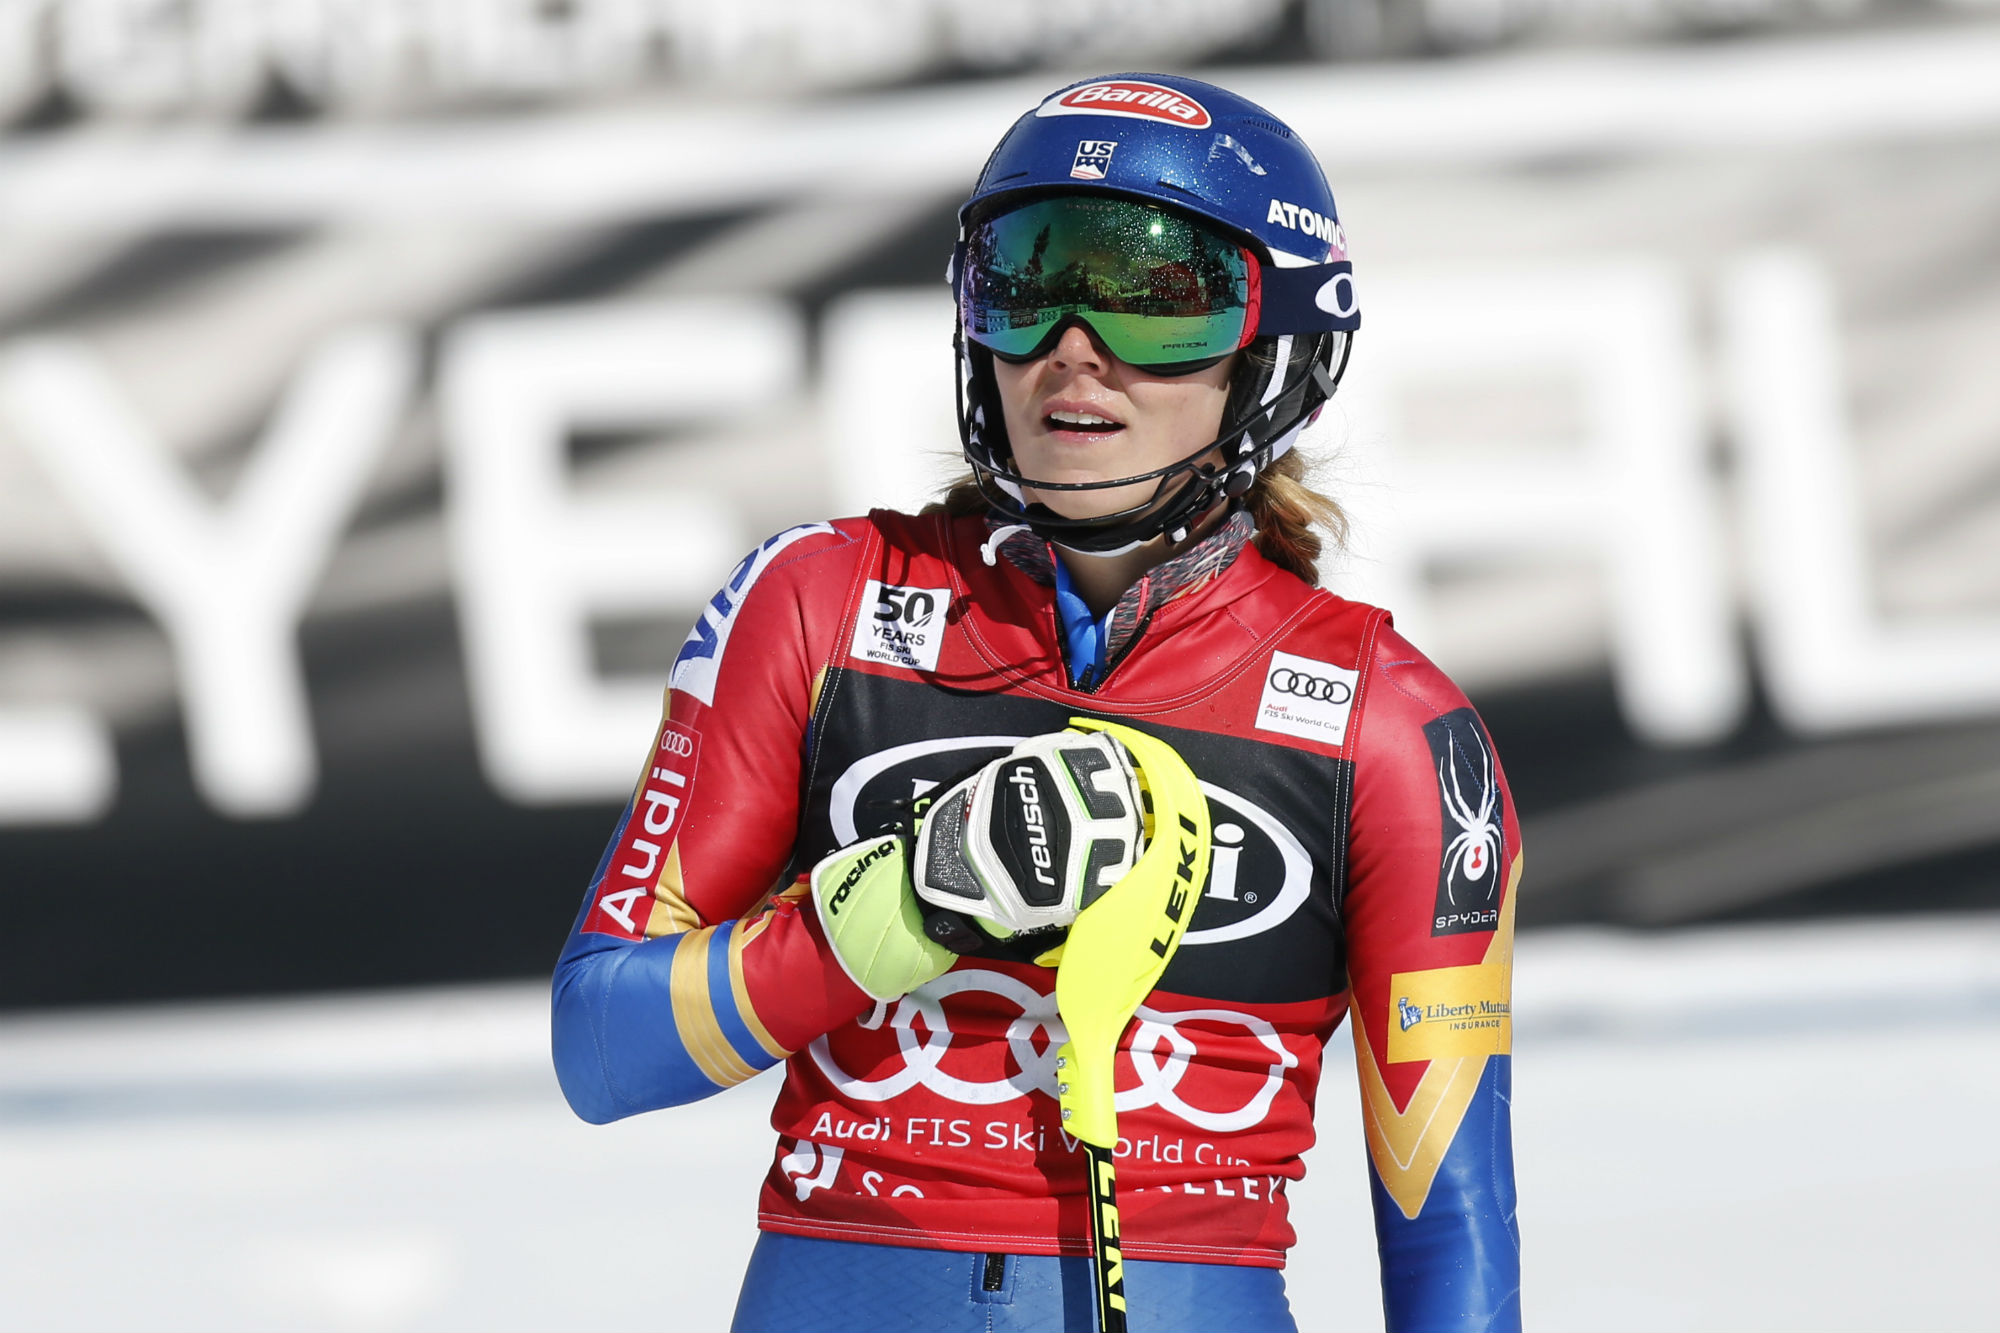 Mikaela Shiffrin in trionfo a Squaw Valley anche in slalom (@Zoom agence)